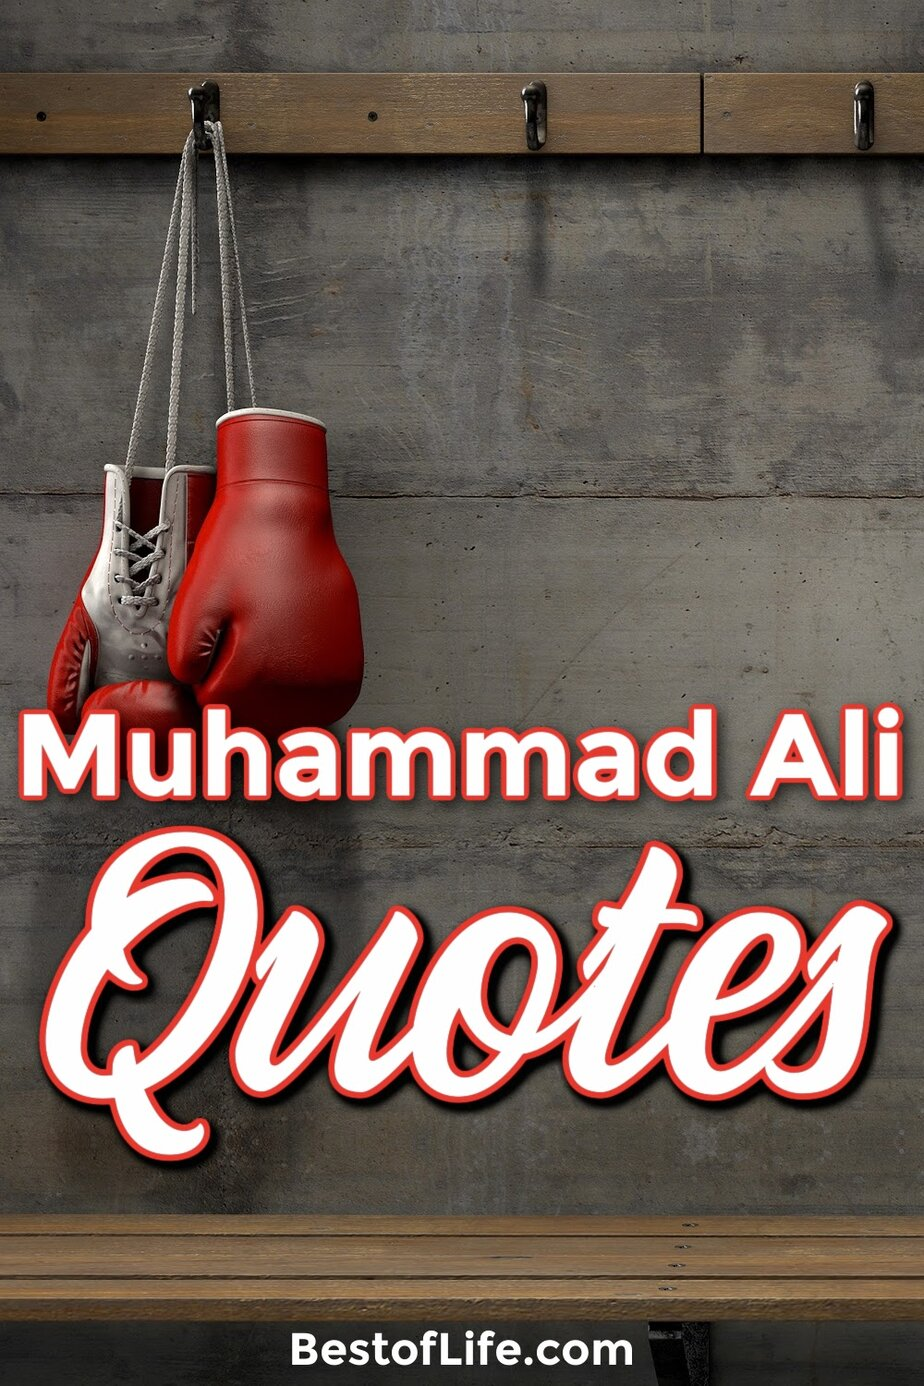 """Some of the best Muhammad Ali quotes inspire us all to """"Float like a butterfly and sting like a bee"""" in our everyday lives. Muhammad Ali Sayings   Things Muhammad Ali Said   Inspirational Quotes   Motivational Quotes   Boxing Quotes   Quotes for Competitors   Quotes for Athletes #motivationalquotes #inspirationalquotes via @thebestoflife"""